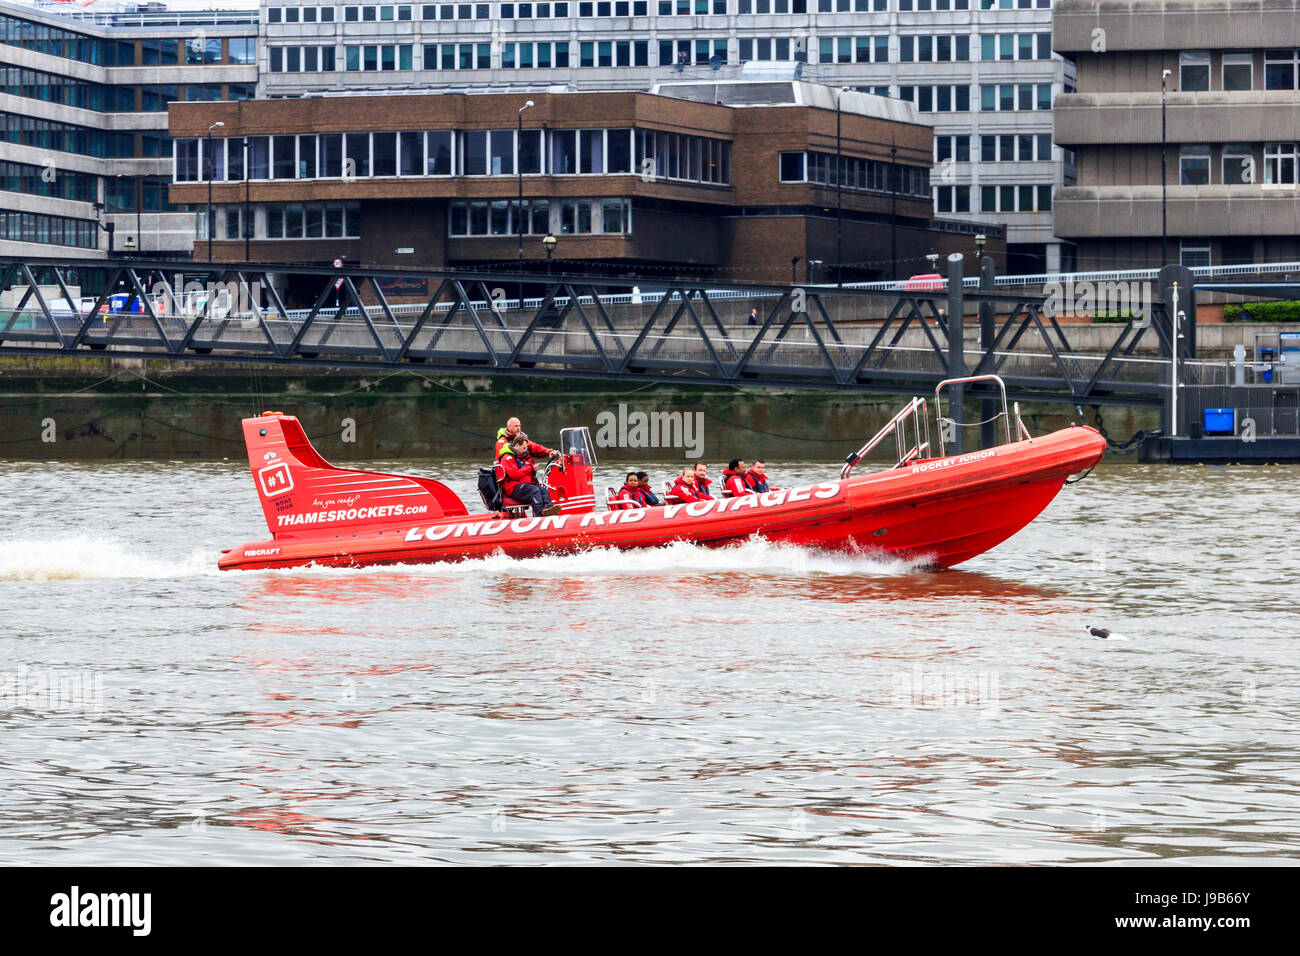 Red high speed 'London RIB Voyages' sightseeing boat on the River Thames at Blackfriars, London, UK - Stock Image